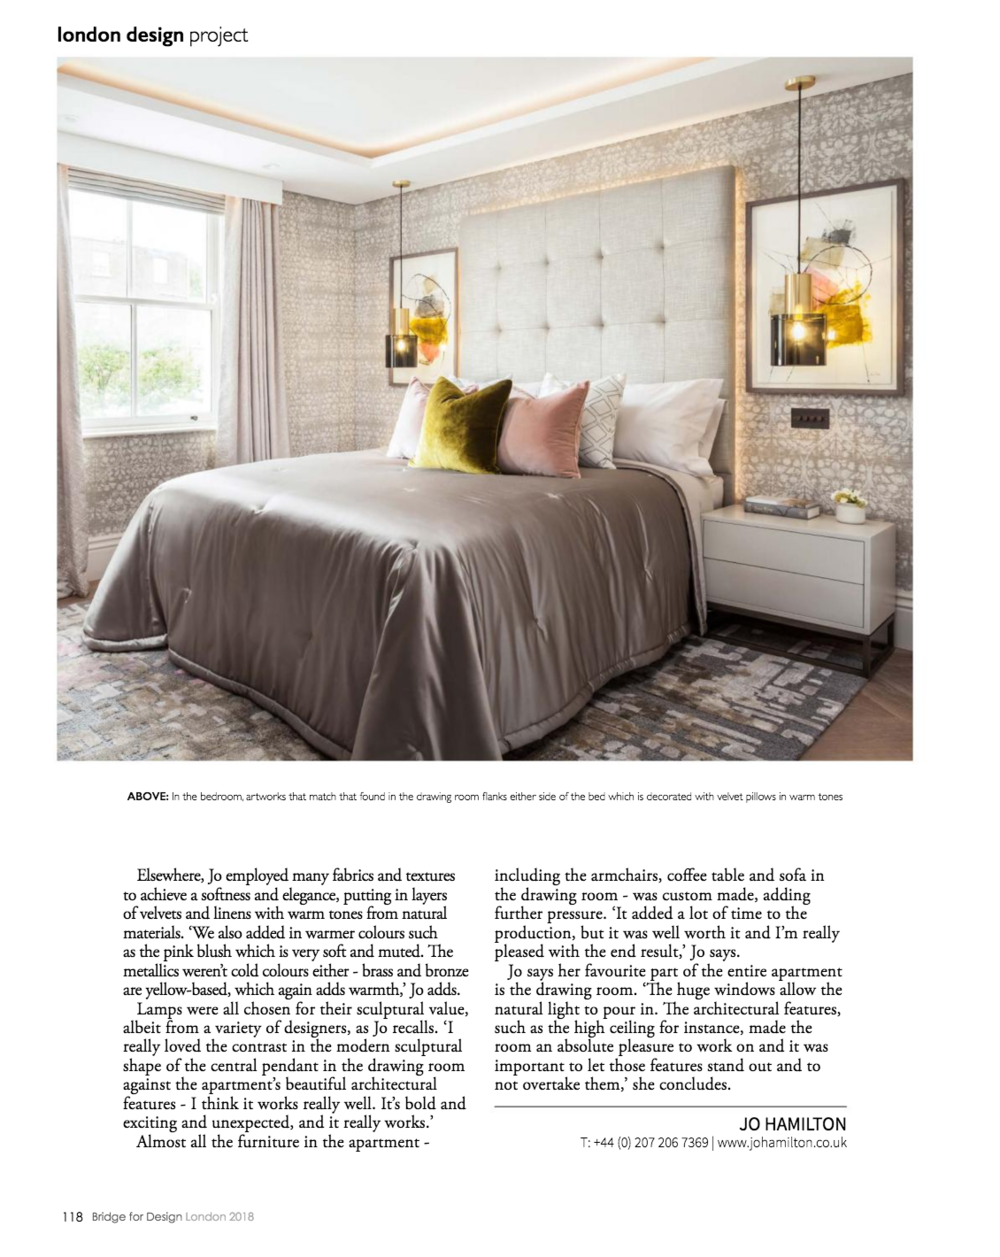 Interior designer Jo Hamilton Bridge for Design p118